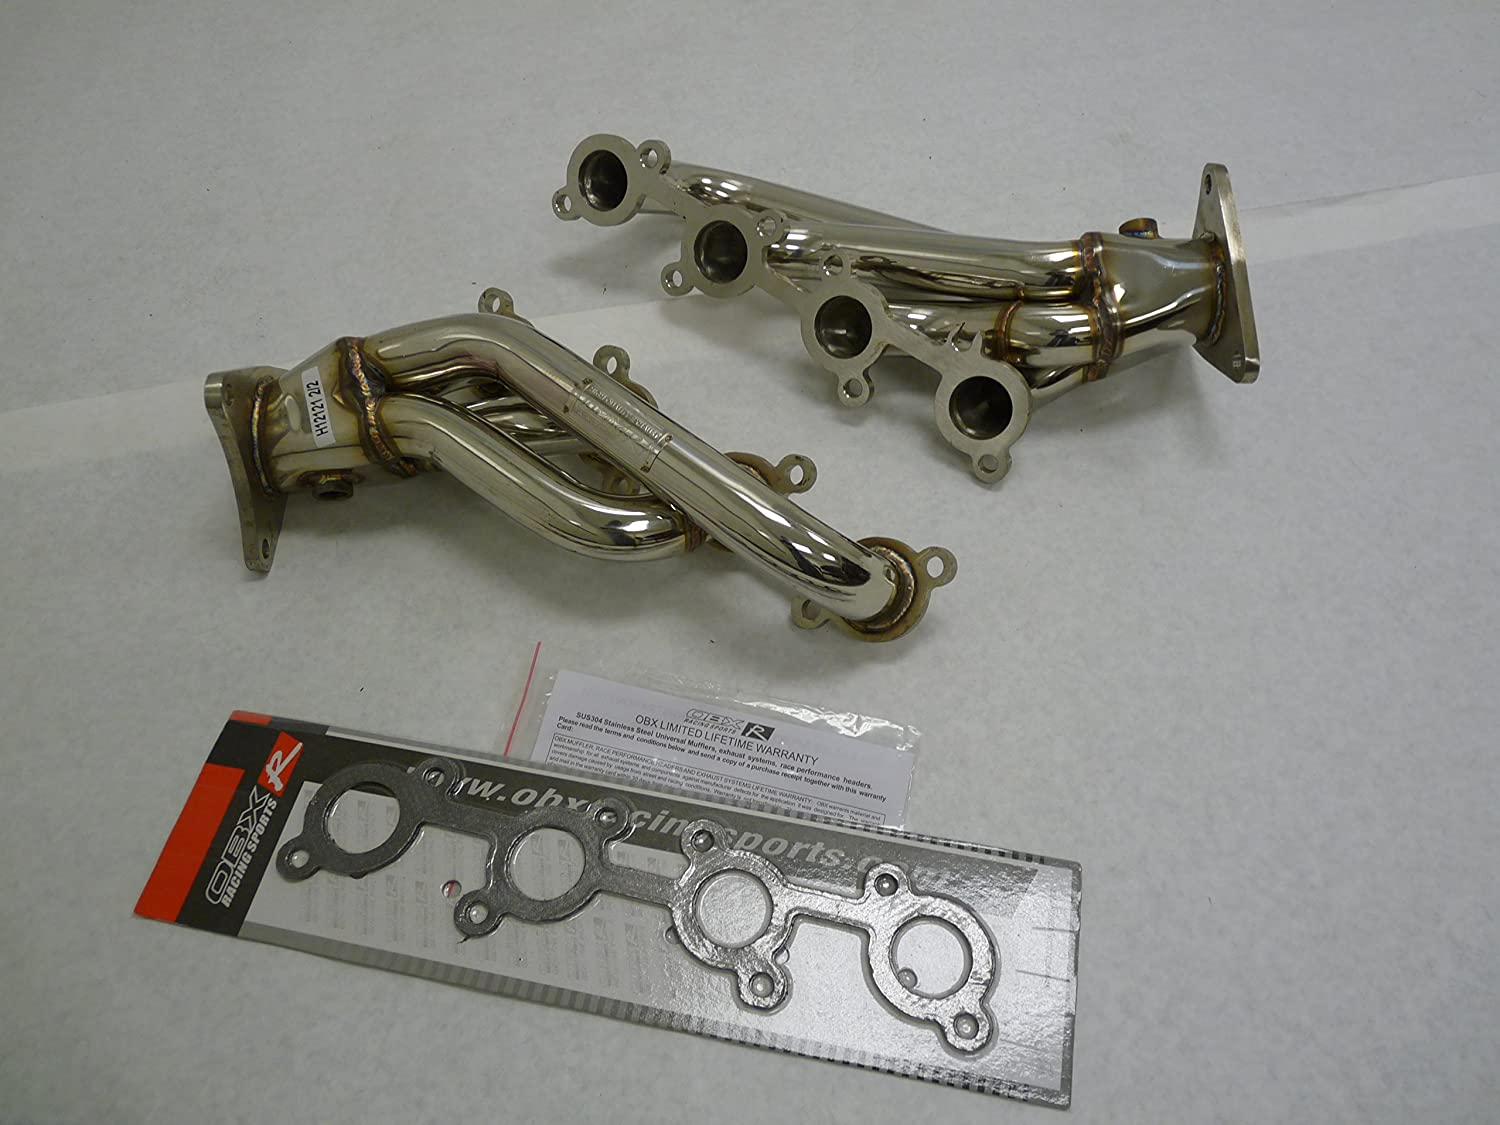 Amazon com: OBX PERFORMANCE STAINLESS STEEL EXHAUST HEADER